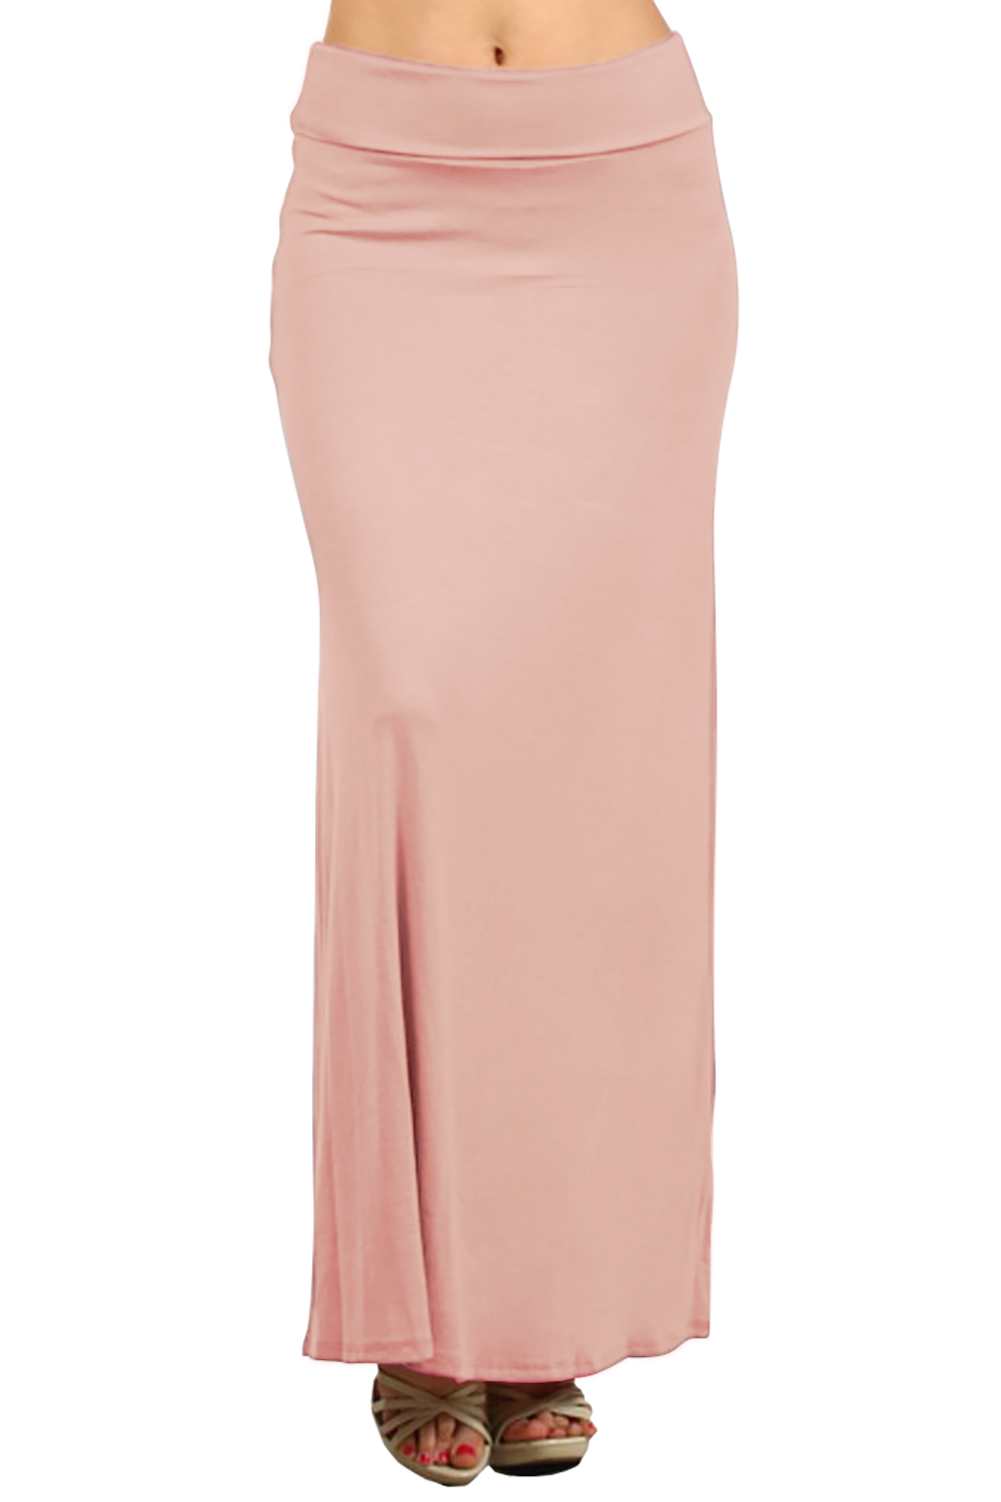 Belle Donne- Women's Maxi Skirt Stretchy Full Length Solid Color Long Skirt - Light Peach/